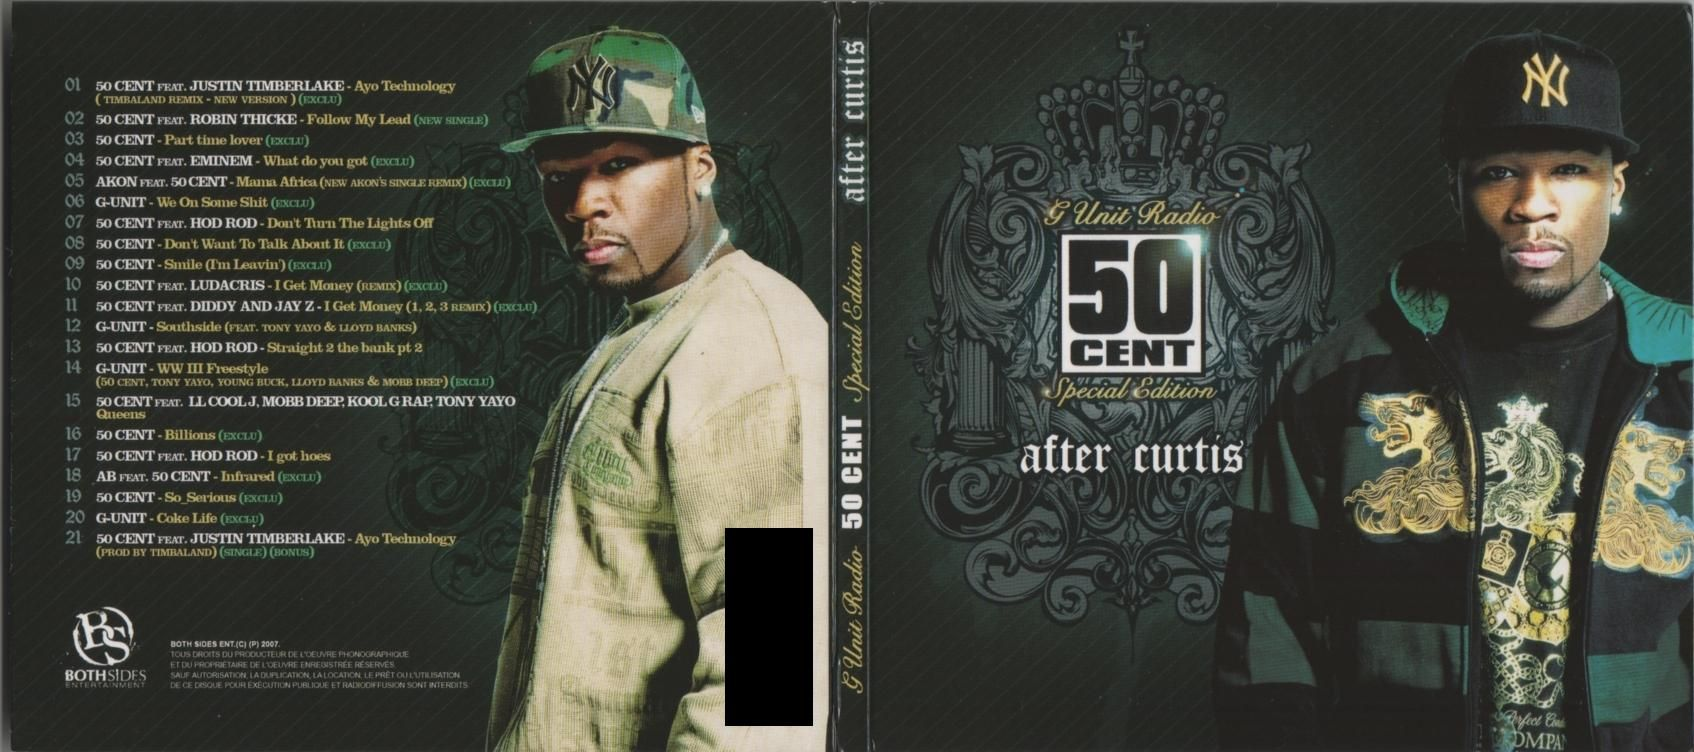 50 Cent - After Curtis album cover